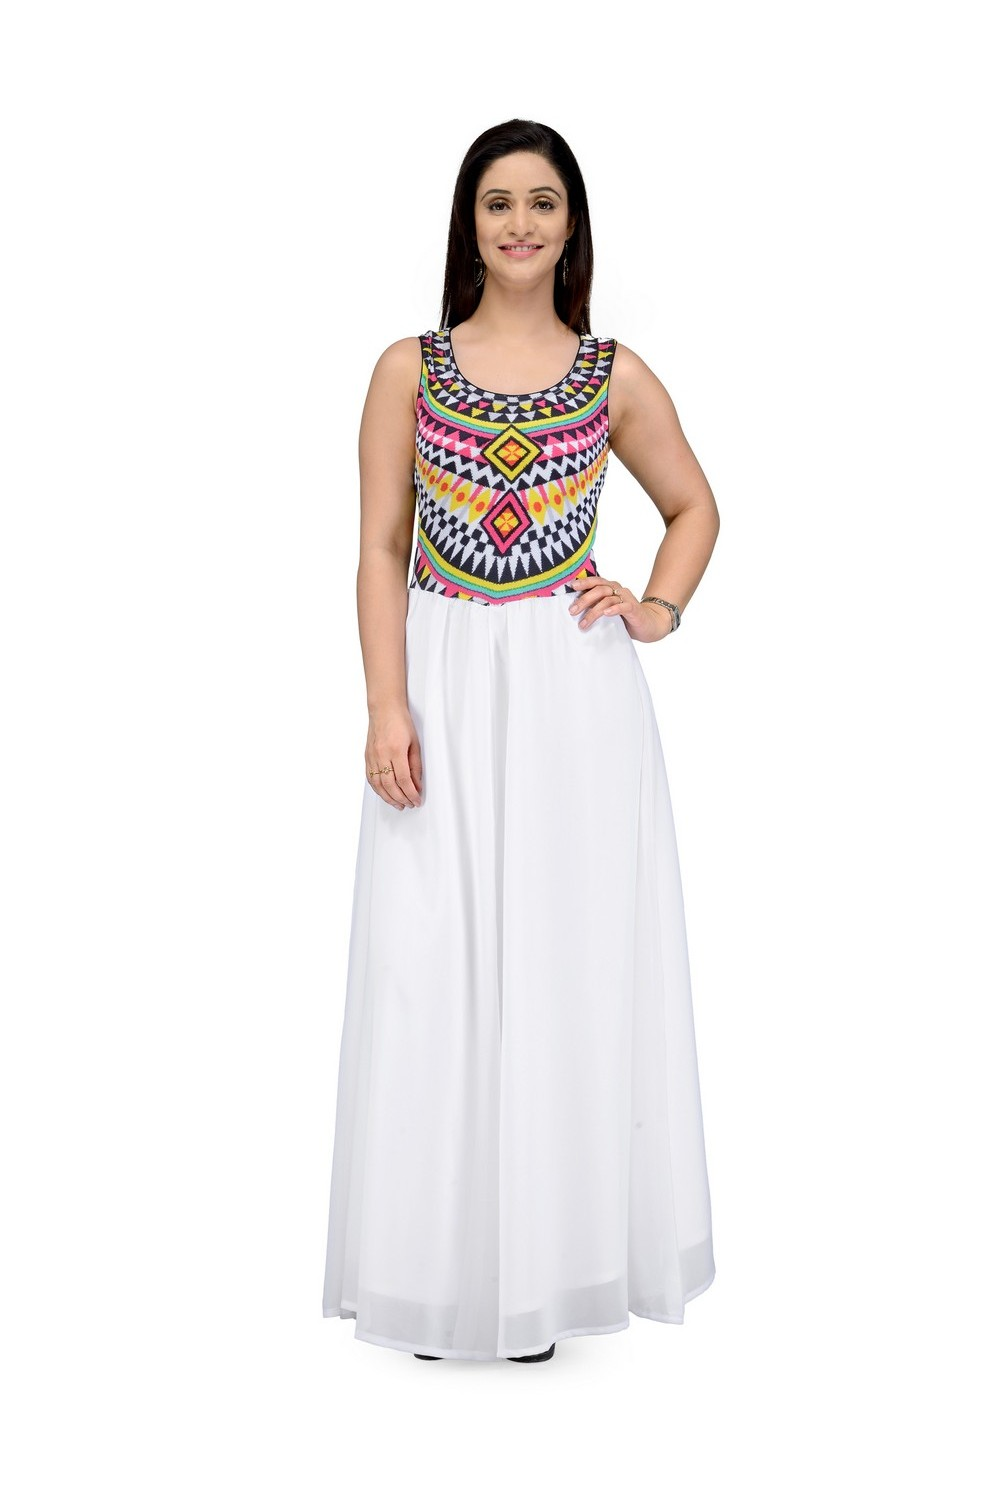 BIBA White Straight Modal Dress